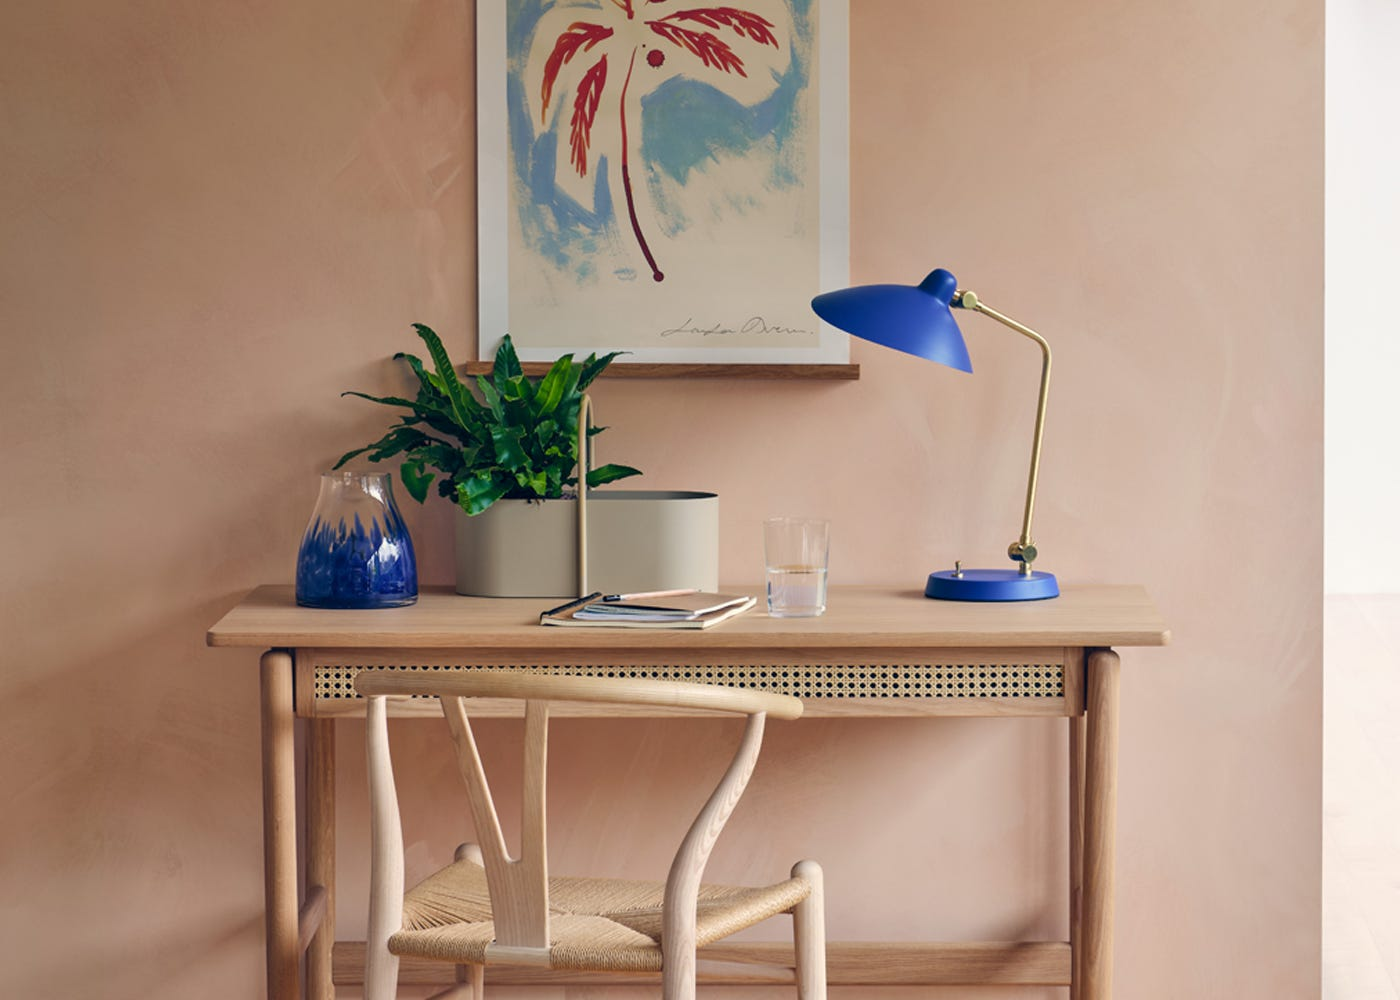 Dapple Vase in blue with Flette Desk and Milton Table Lamp